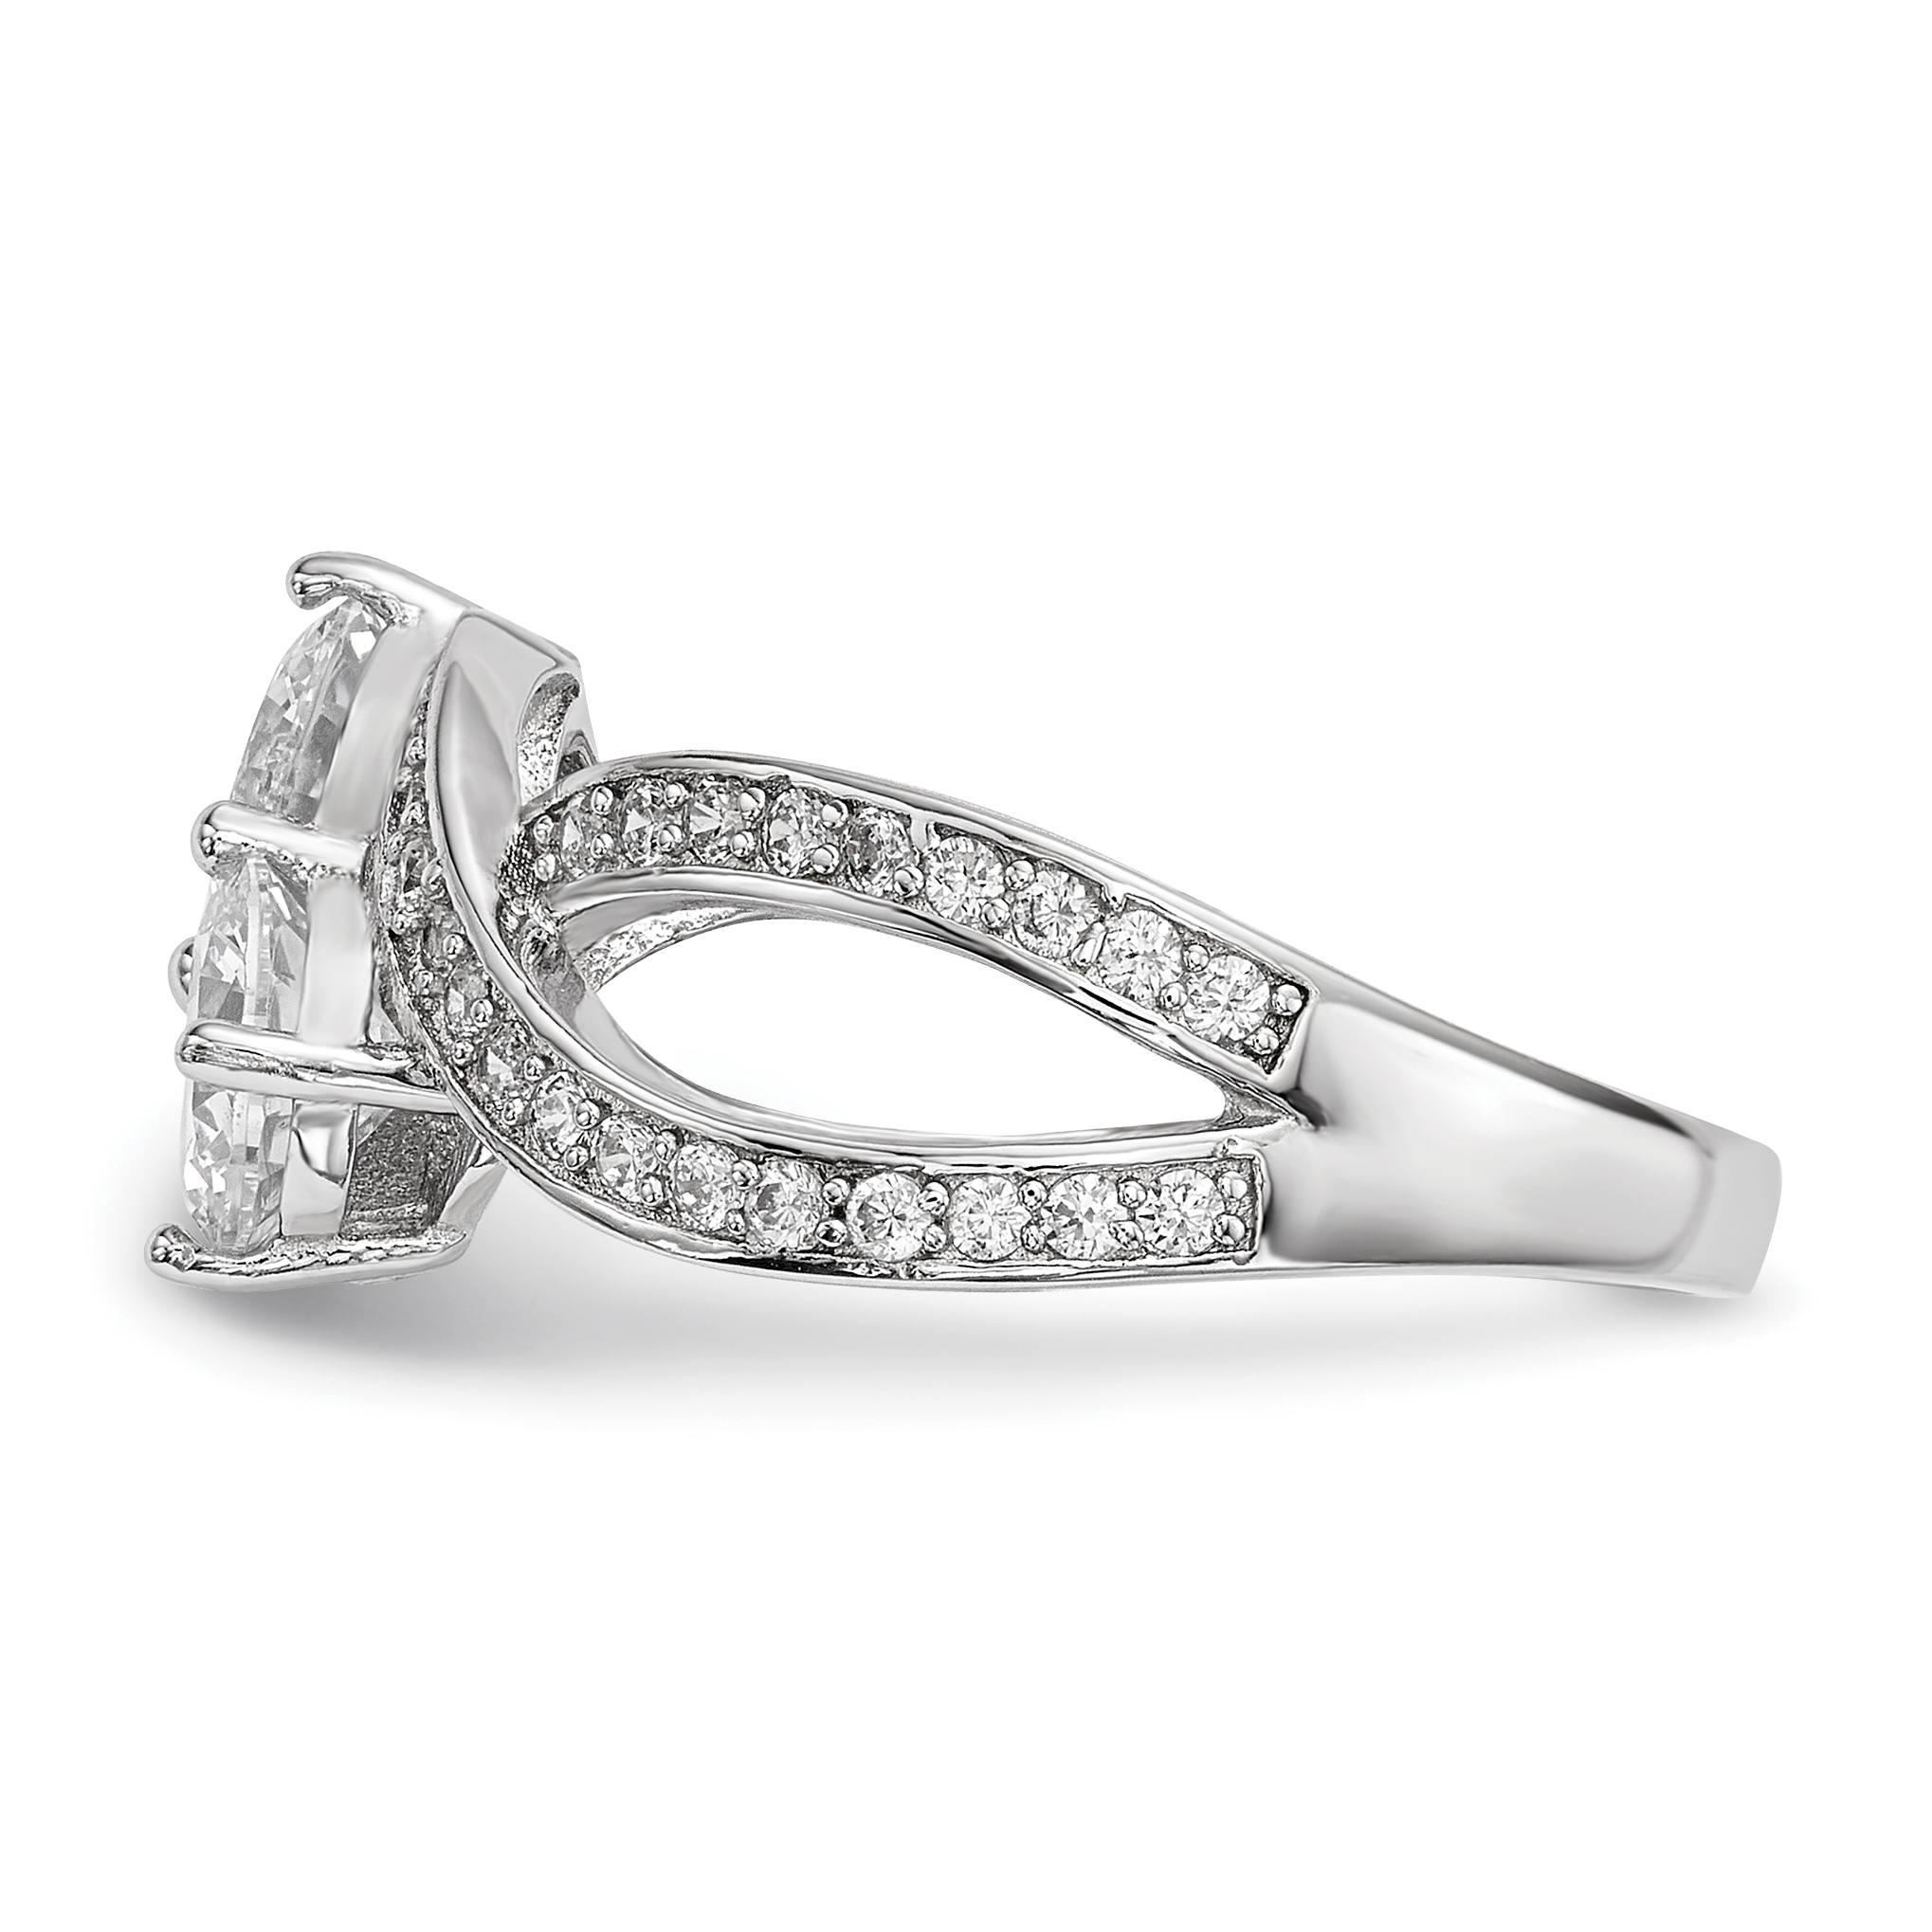 925 Sterling Silver Cubic Zirconia Cz Two Stone Band Ring Size 8.00 Fine Jewelry Gifts For Women For Her - image 2 of 3